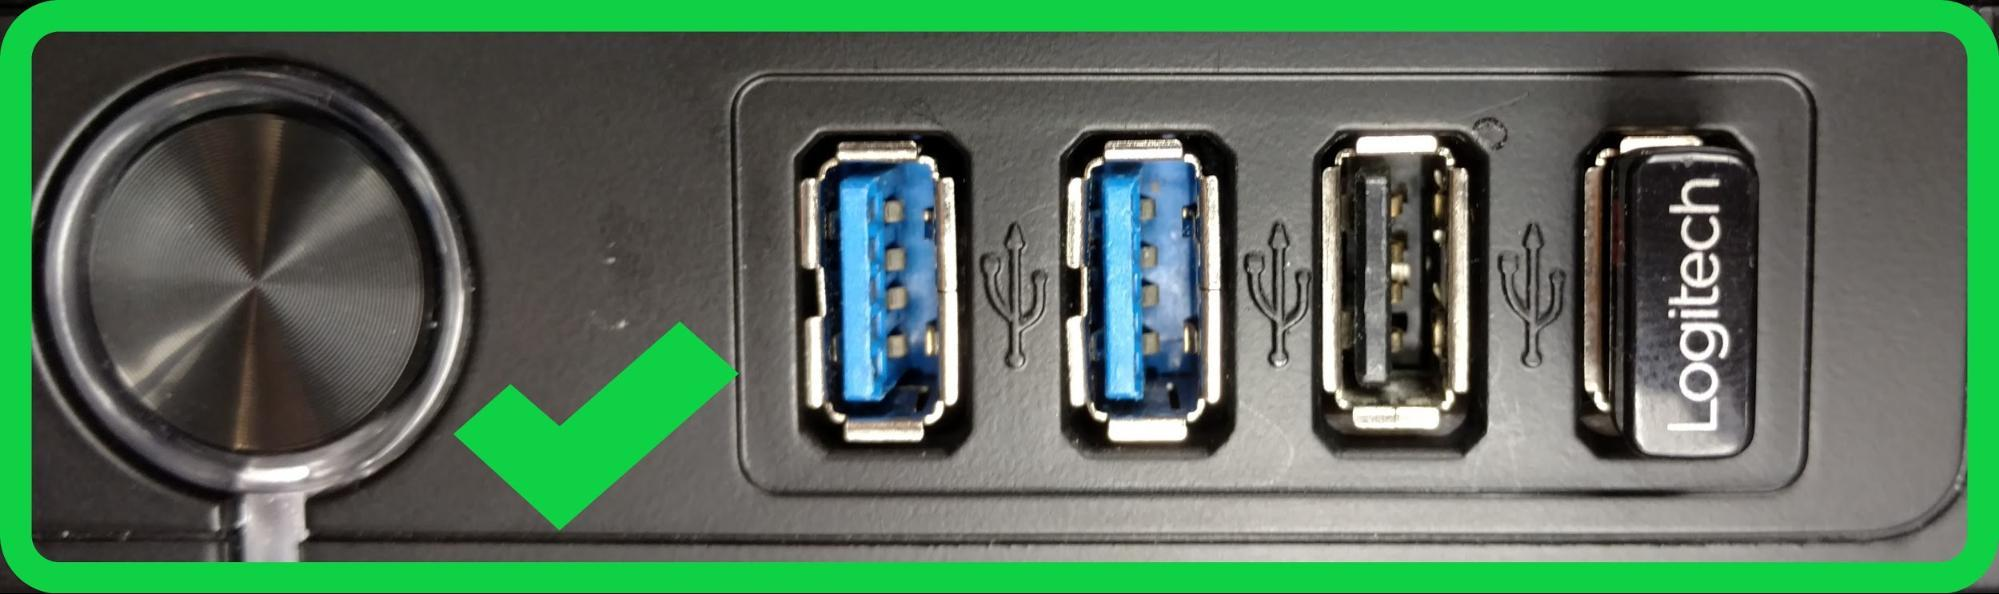 Use USB 2.0 ports for wireless receivers to reduce interference, unless they are specifically designed for USB 3.0